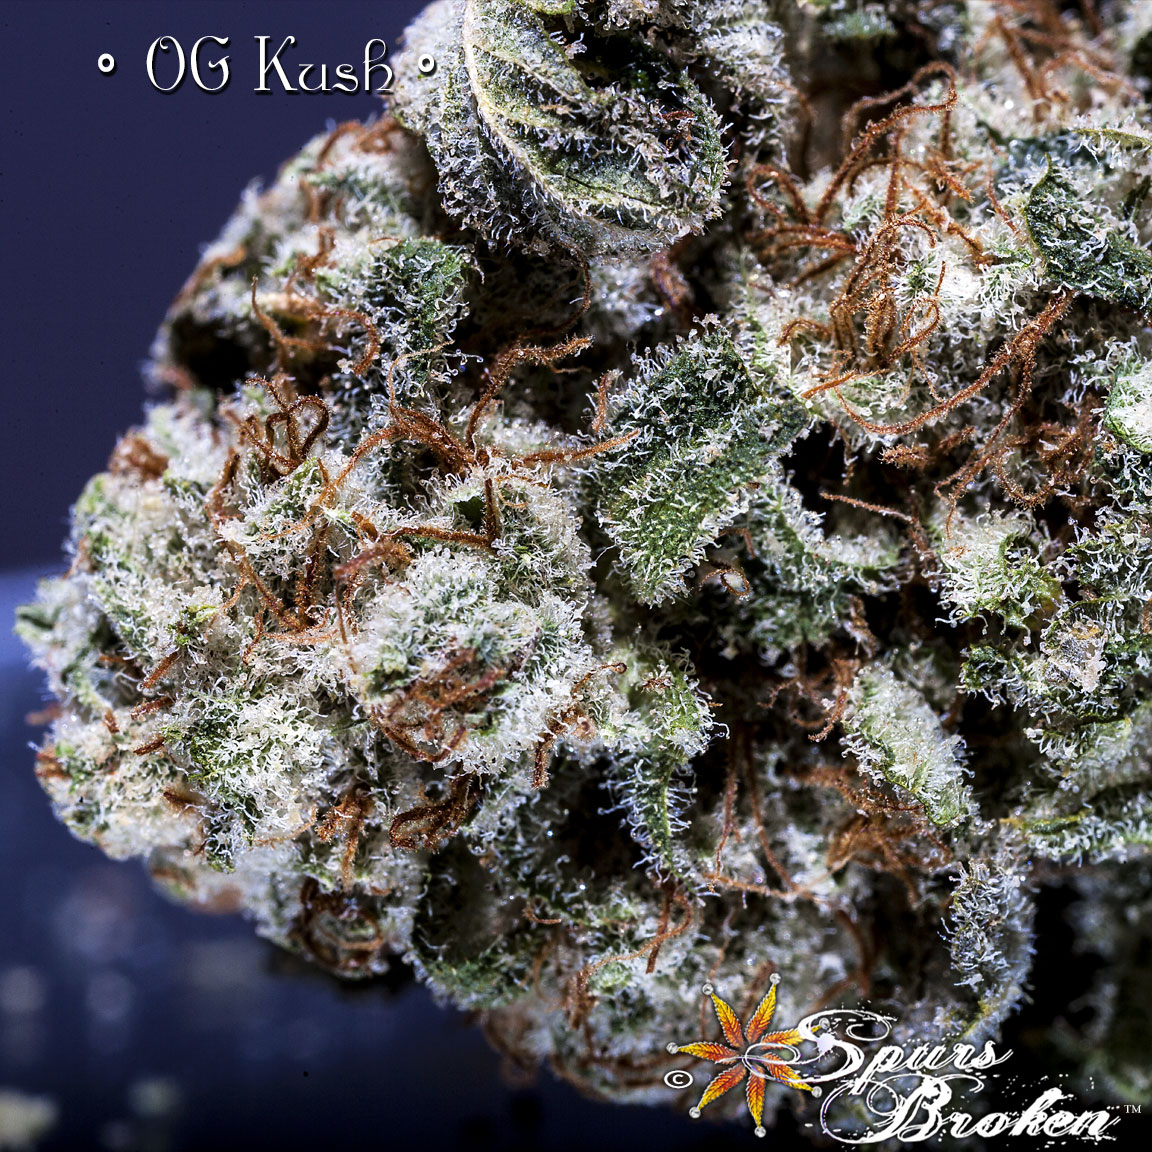 OG Kush - Cannabis Macro Photography by Spurs Broken (Robert R. Sanders)